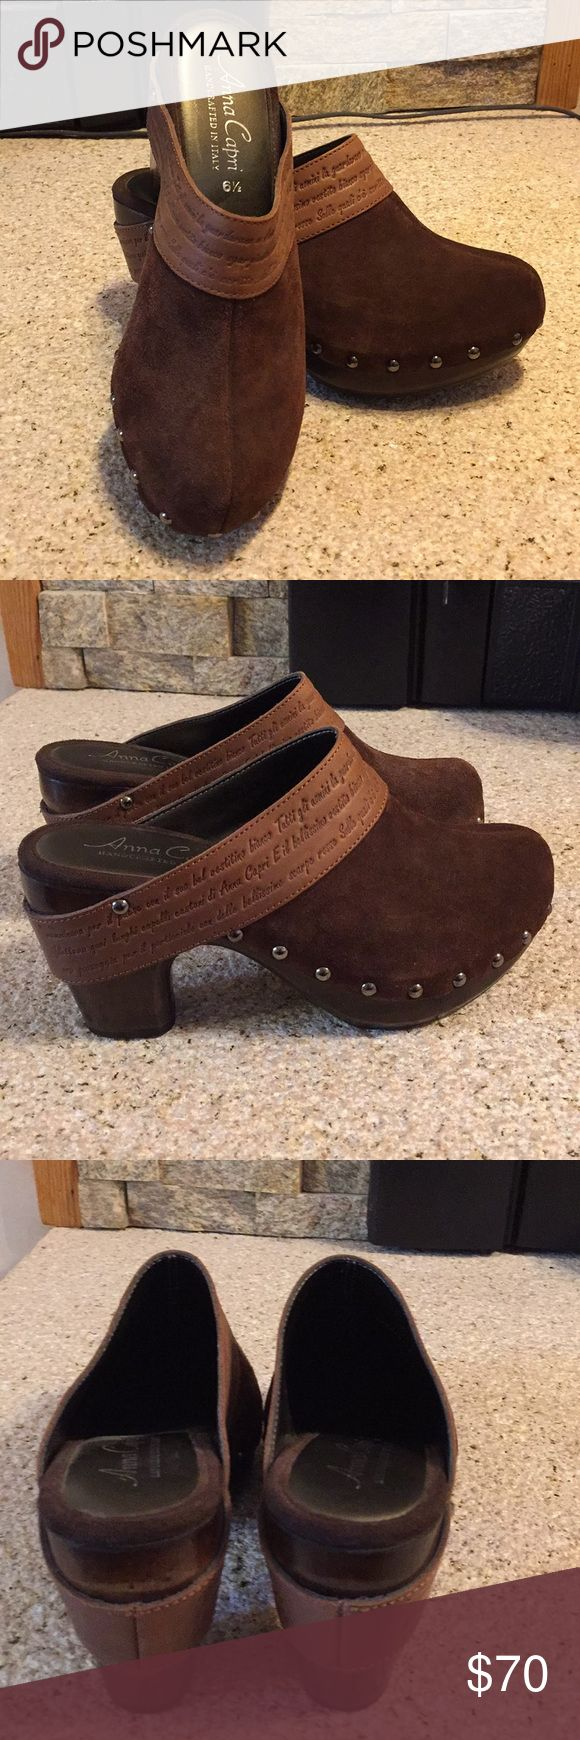 Anna Capri Handcrafted in Italy Clogs Suede 6 1/2 Beautifully crafted in Italy Anna Capri Clogs. Suede leather uppers with wood soles. Perfect with a pair of jeans on a fall or winter day. Worn once. Anna Capri Shoes Mules & Clogs